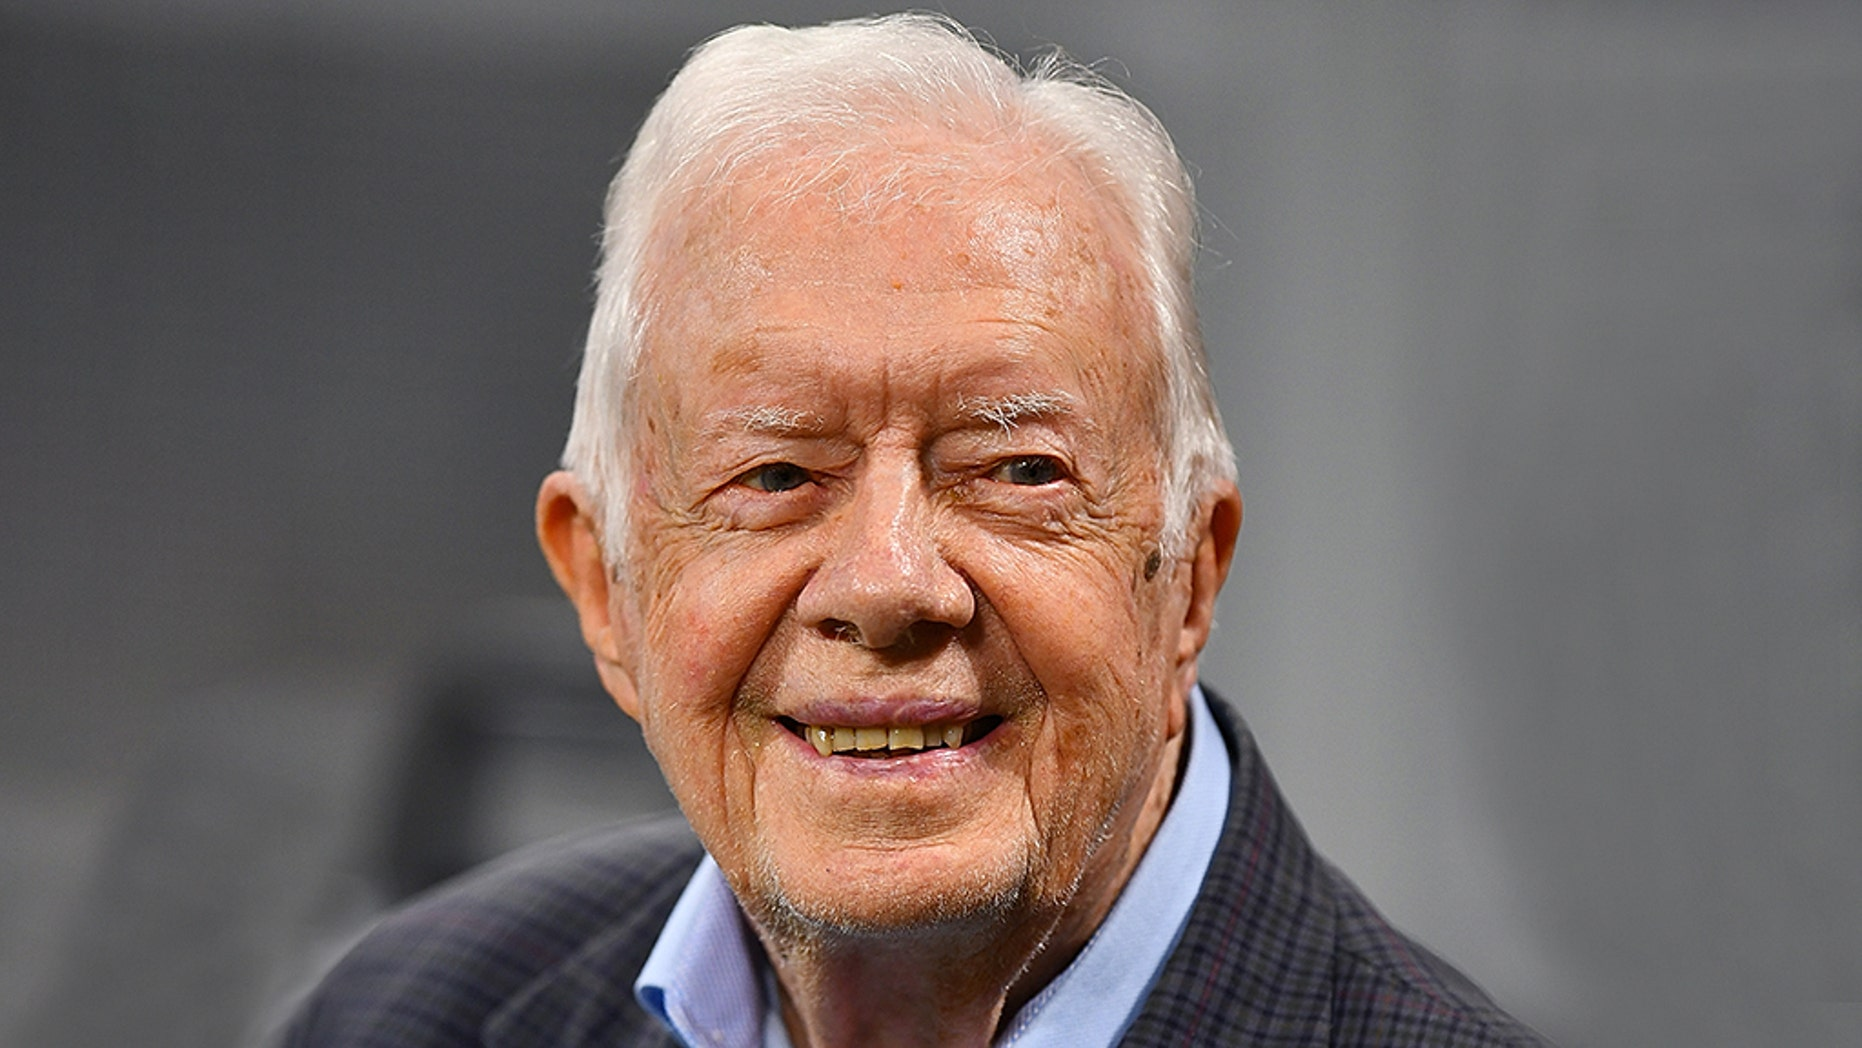 From Thursday, March 21, Jimmy Carter became the country's oldest former living president for 94 years and 172 days old.